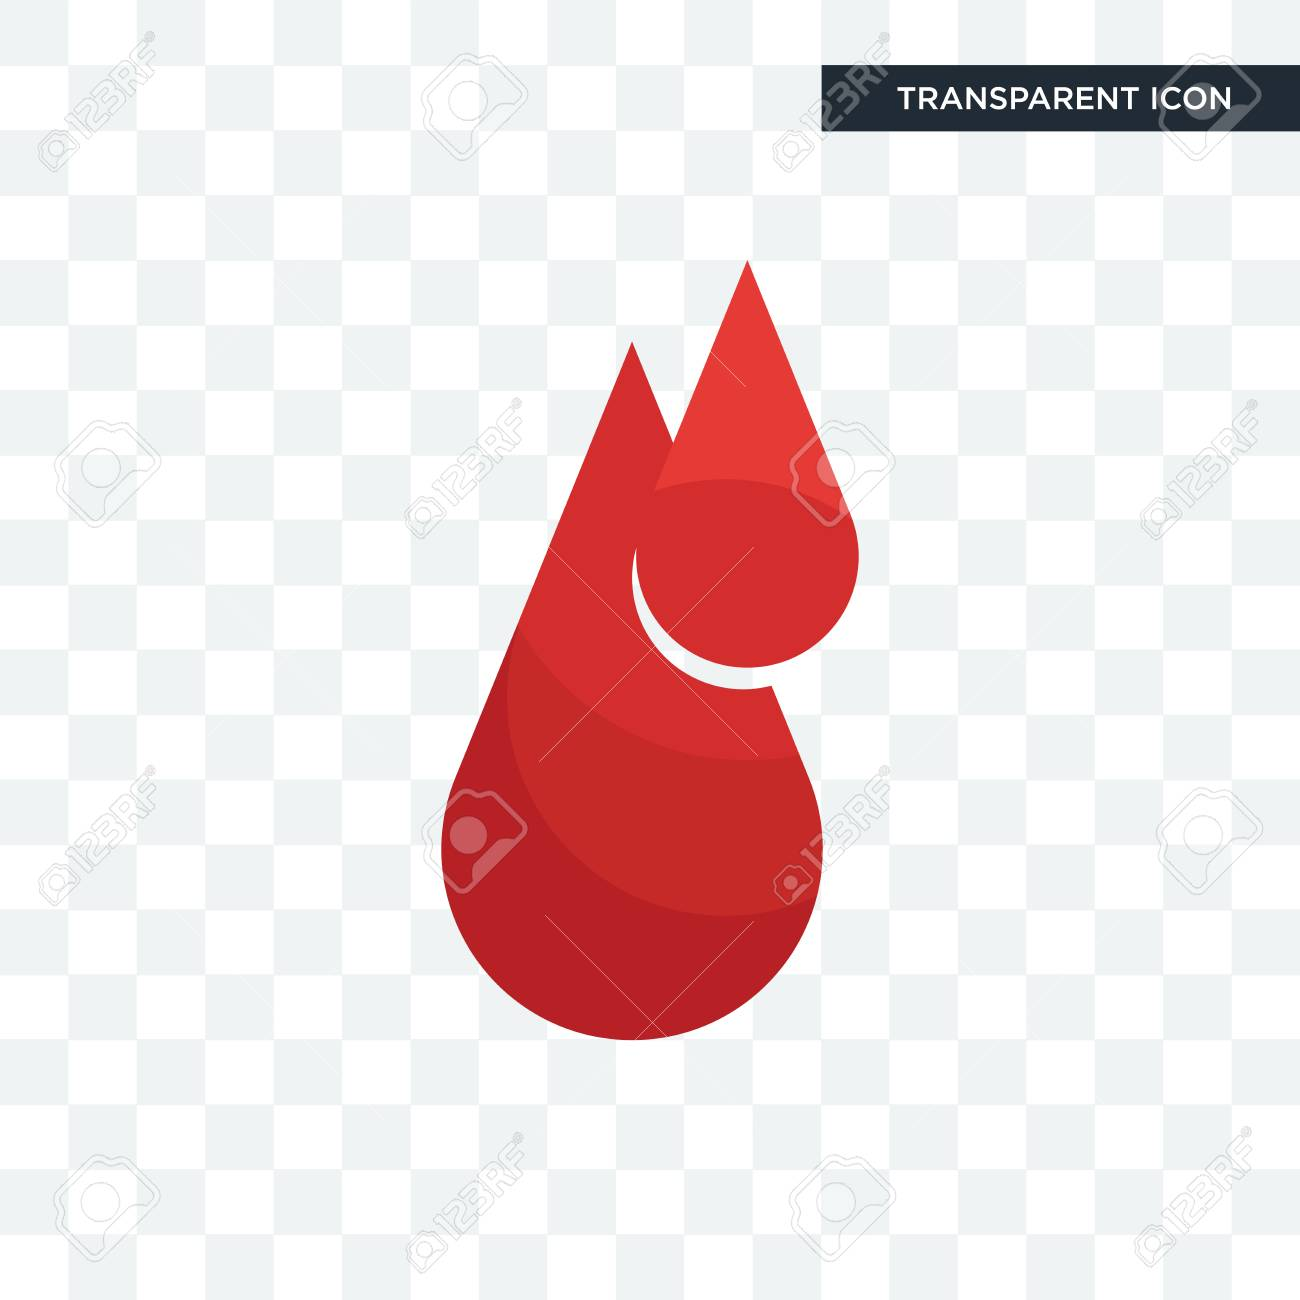 Blood Drop Transparent - Blood Drop Vector Icon Isolated On Transparent Background, Blood ...